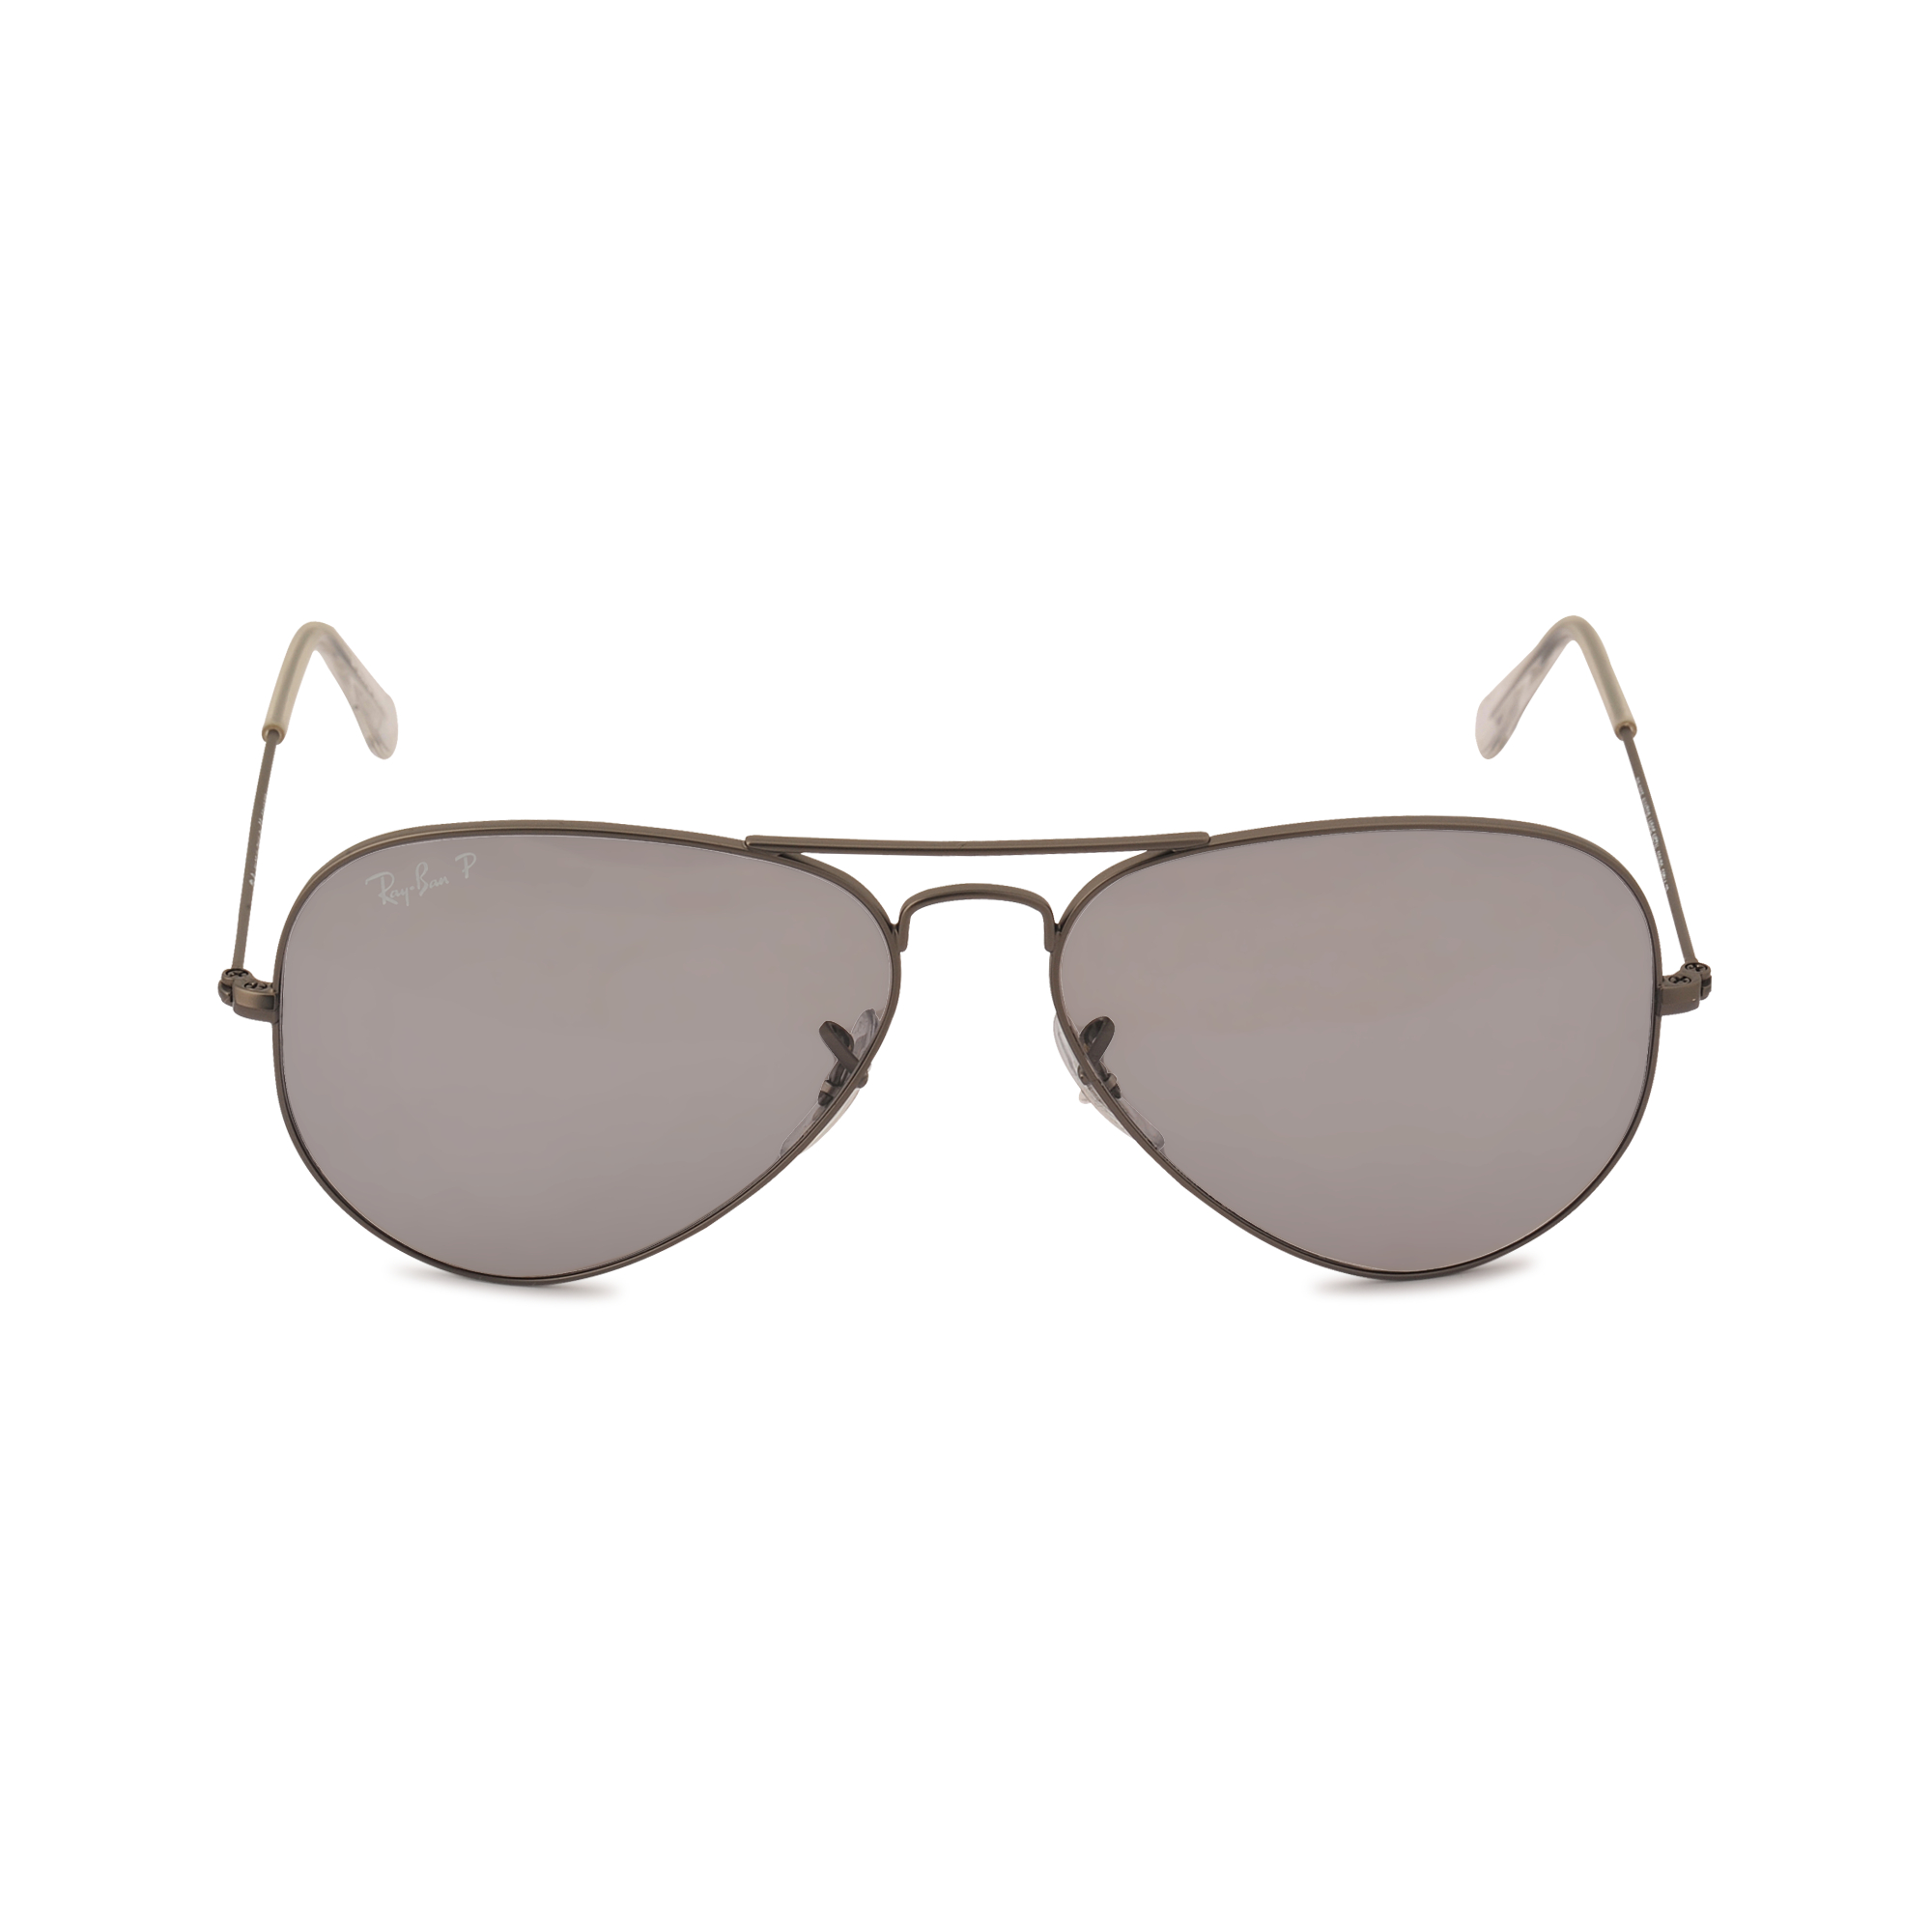 ray ban aviator sunglasses 3025 in gray lyst. Black Bedroom Furniture Sets. Home Design Ideas